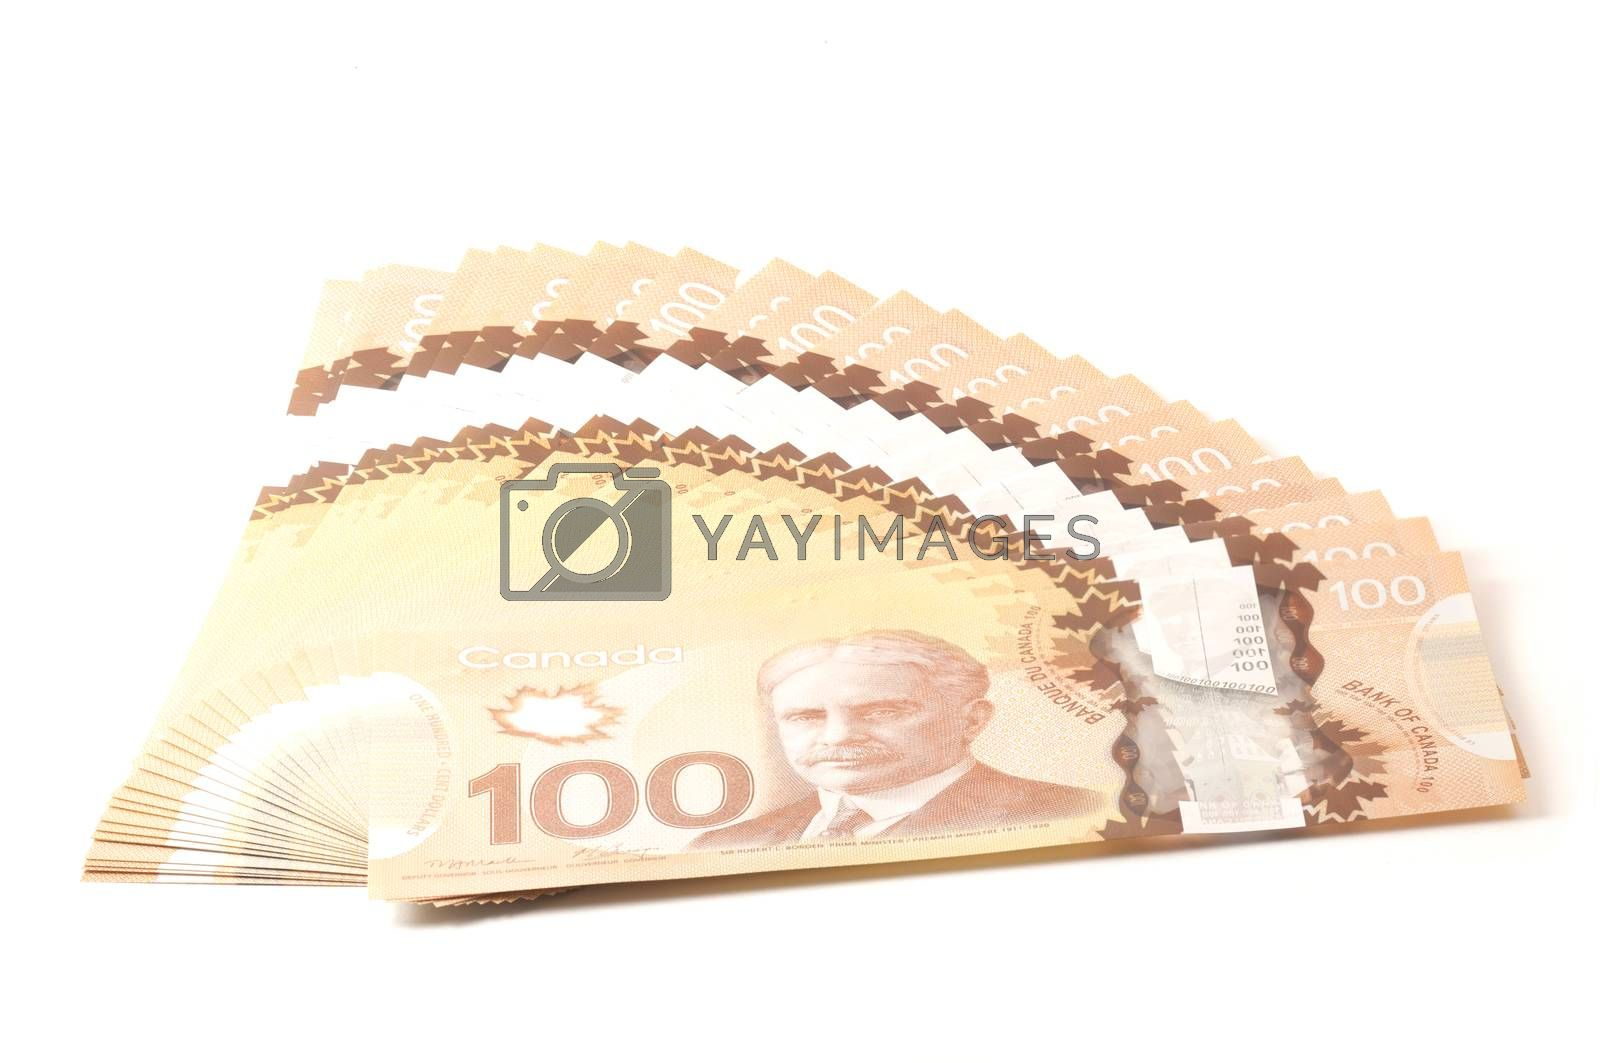 100 dollars Canadian bank notes in polymer